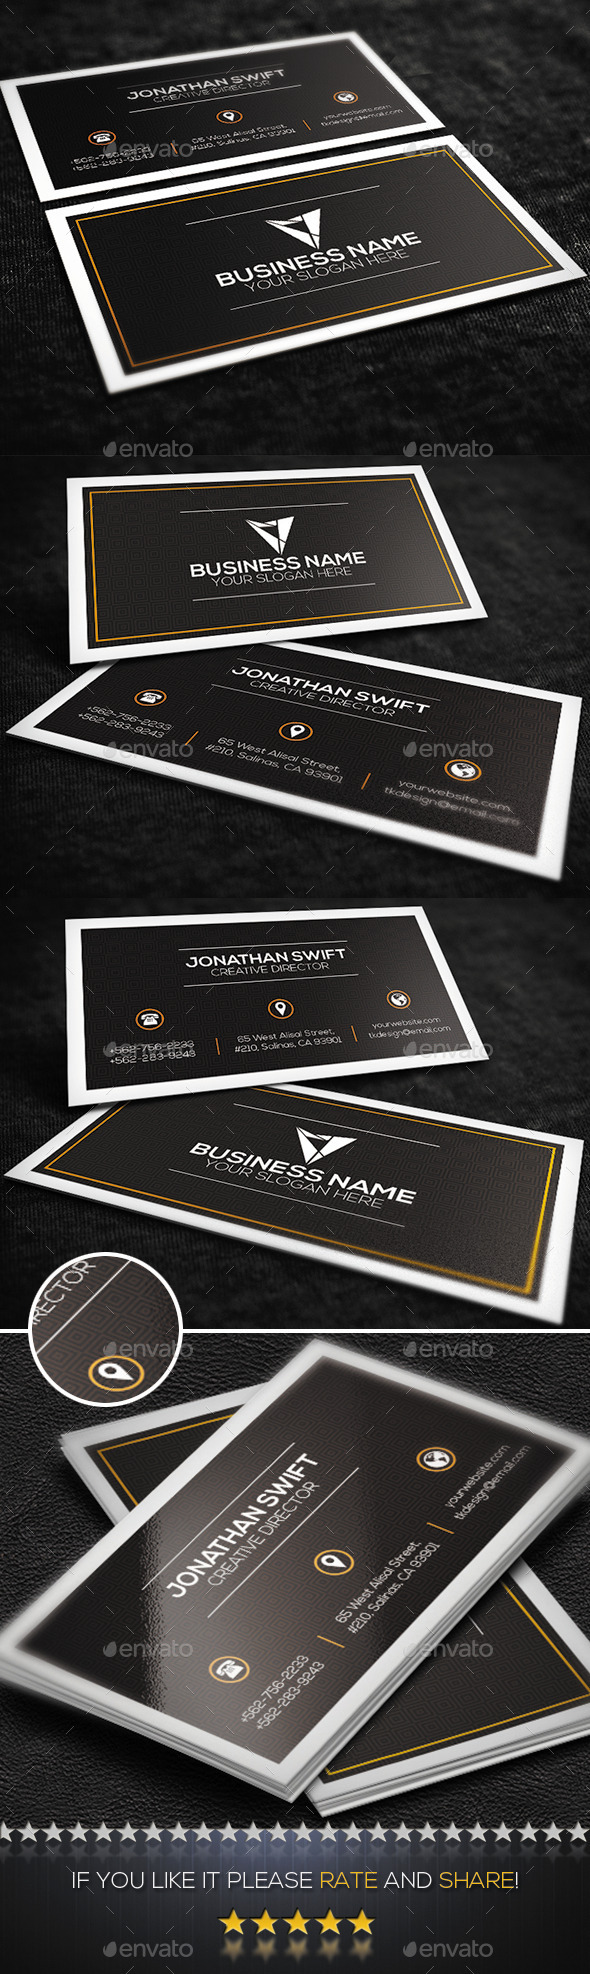 Brown Corporate Business Card - Corporate Business Cards